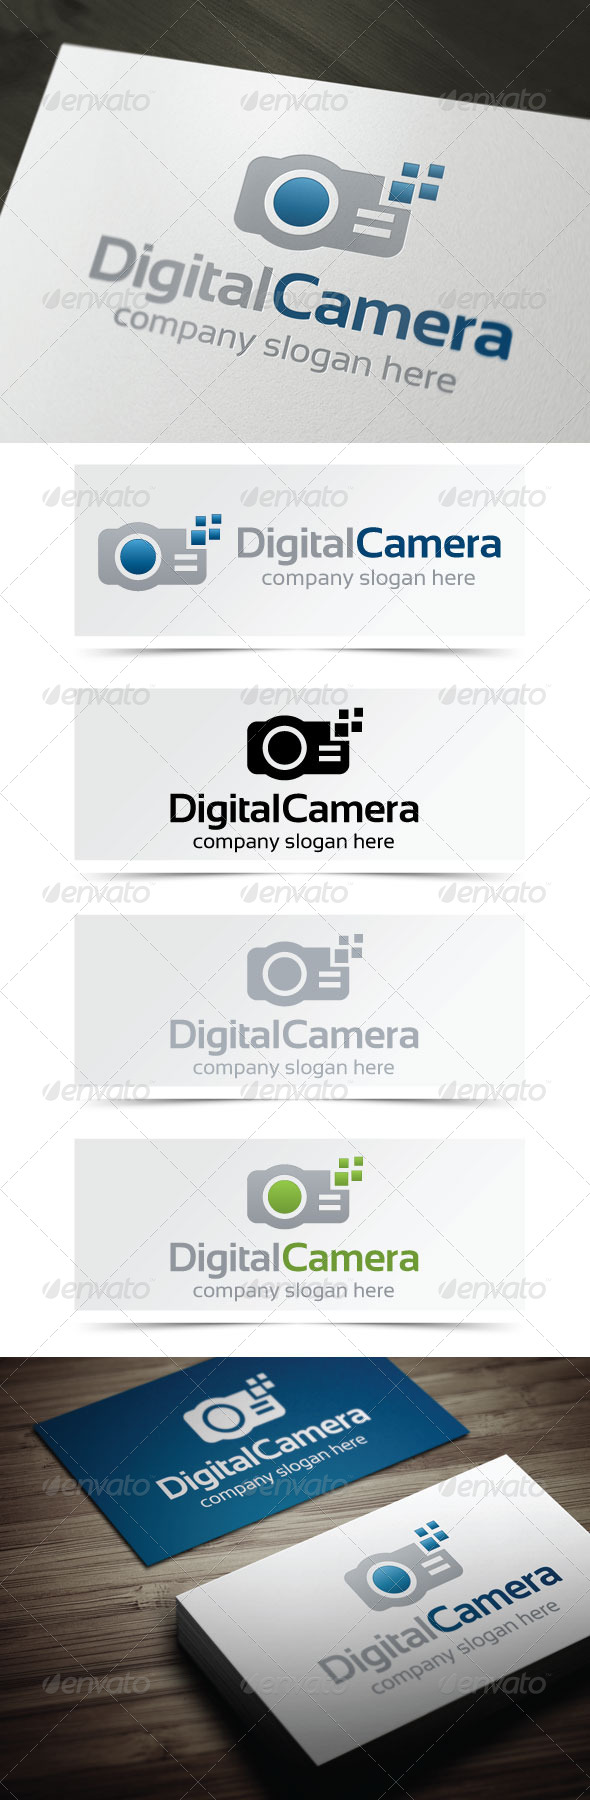 Digital Camera - Objects Logo Templates